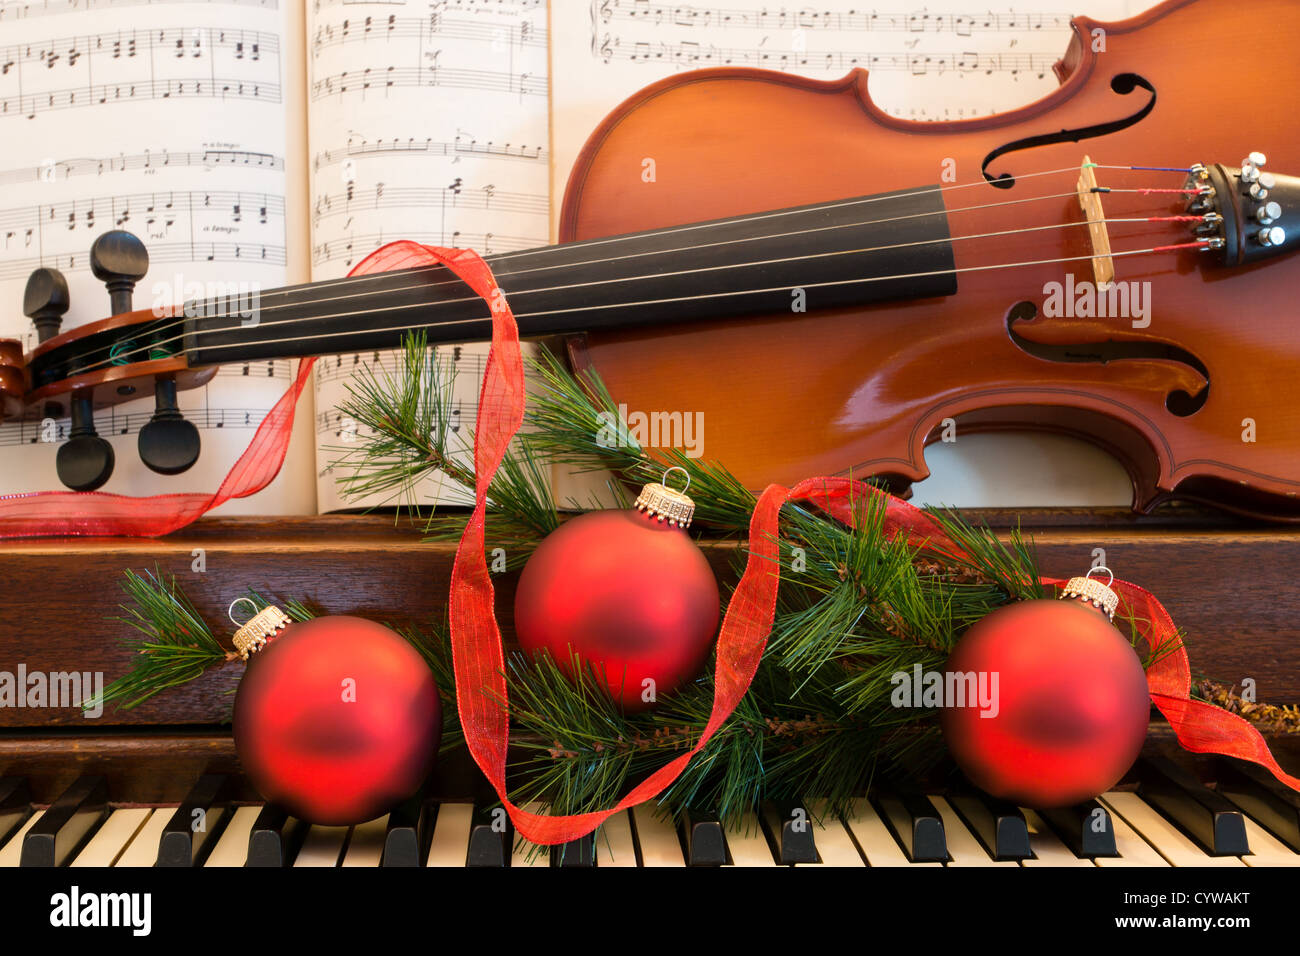 A violin, sheet music, and holiday Christmas decorations sit on an ...